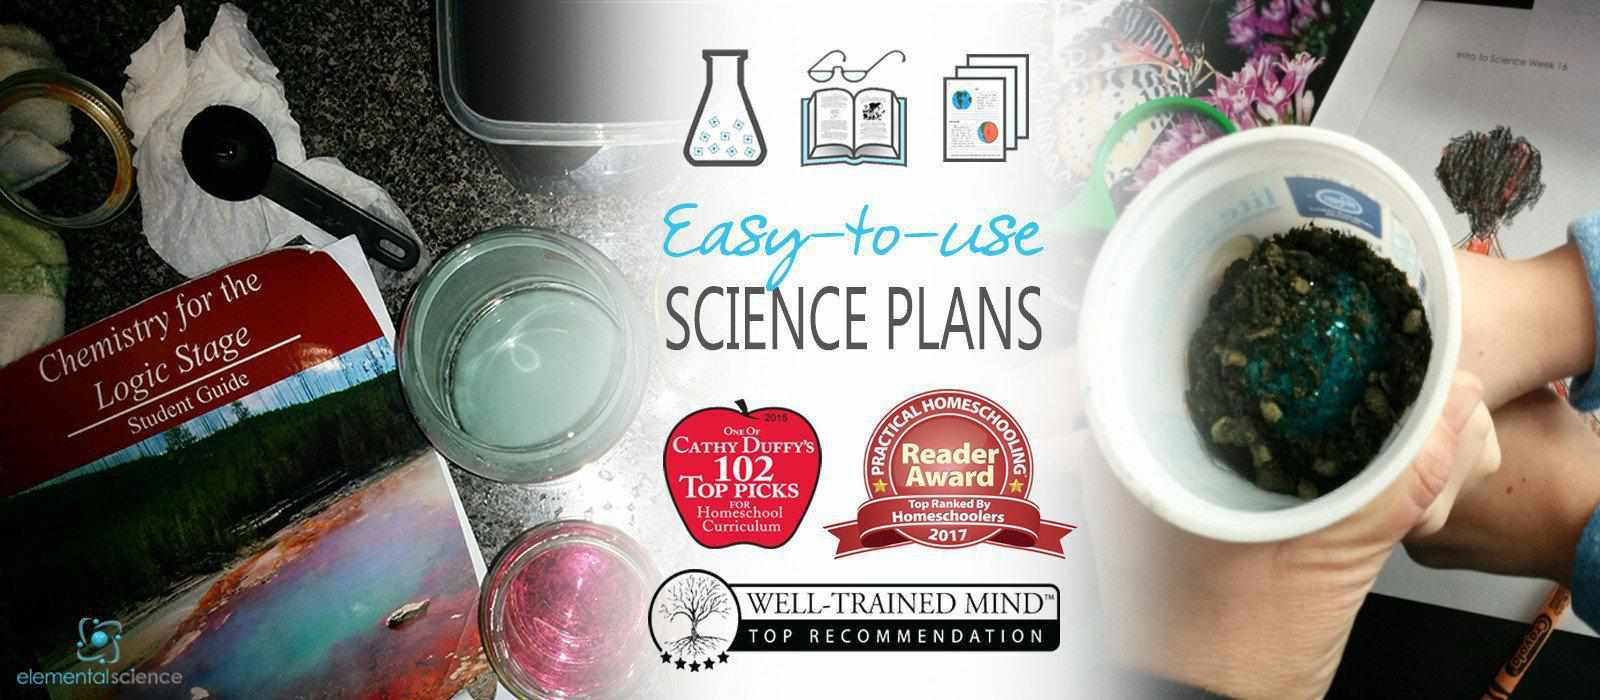 Homeschool Science Curriculum from Elemental Science